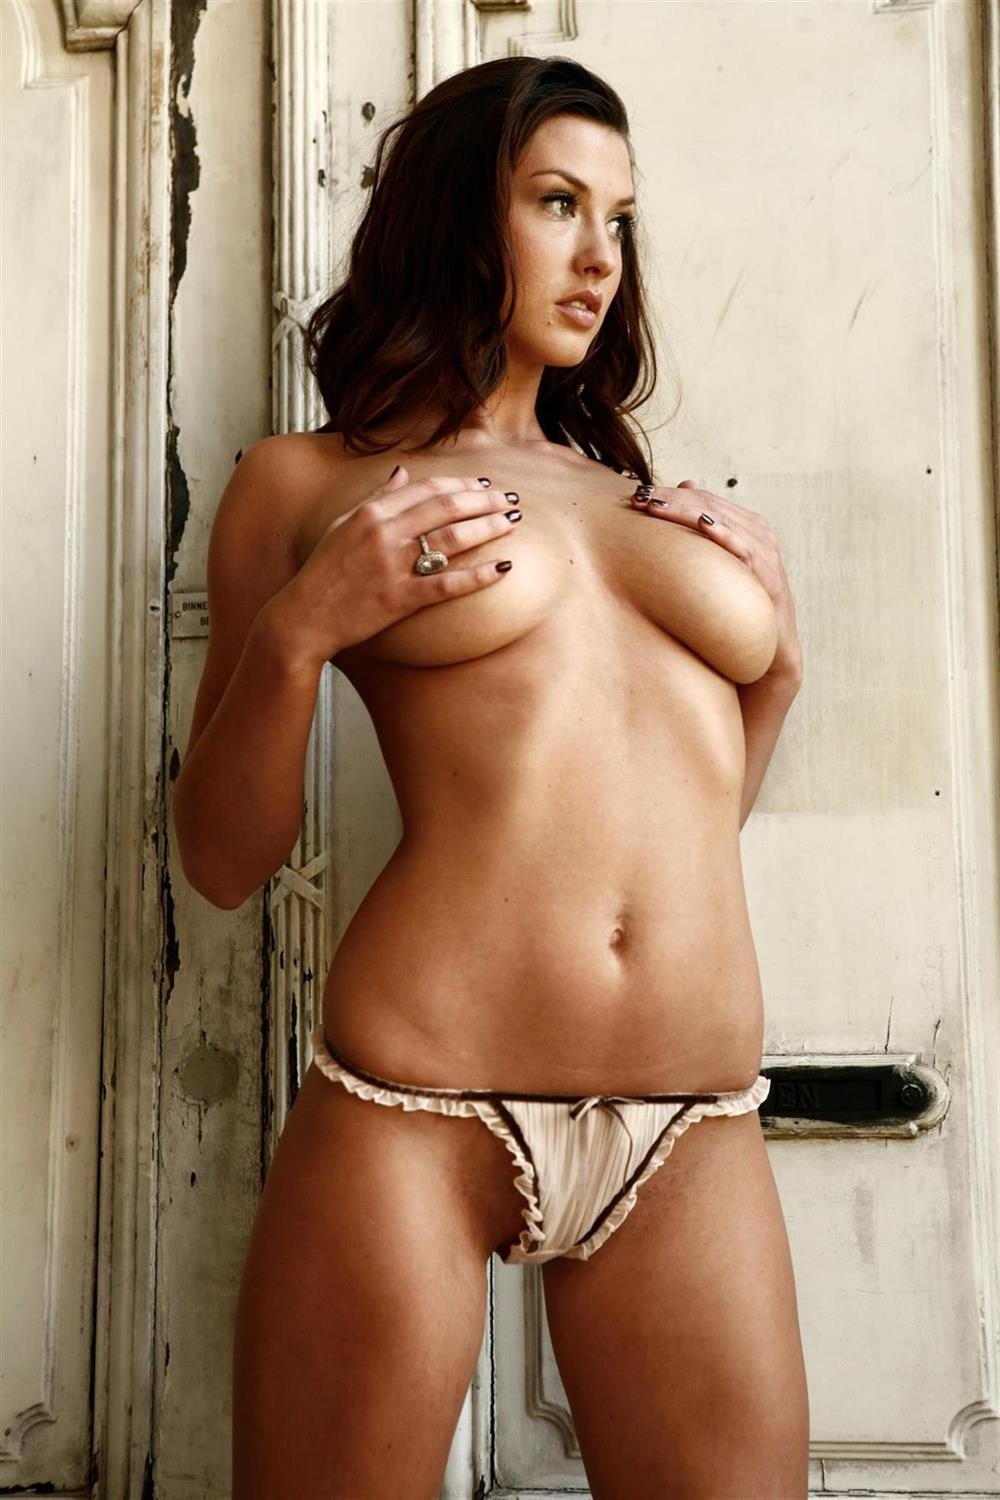 Alice Goodwin Porn Forums alice goodwin in front of old wooden doors